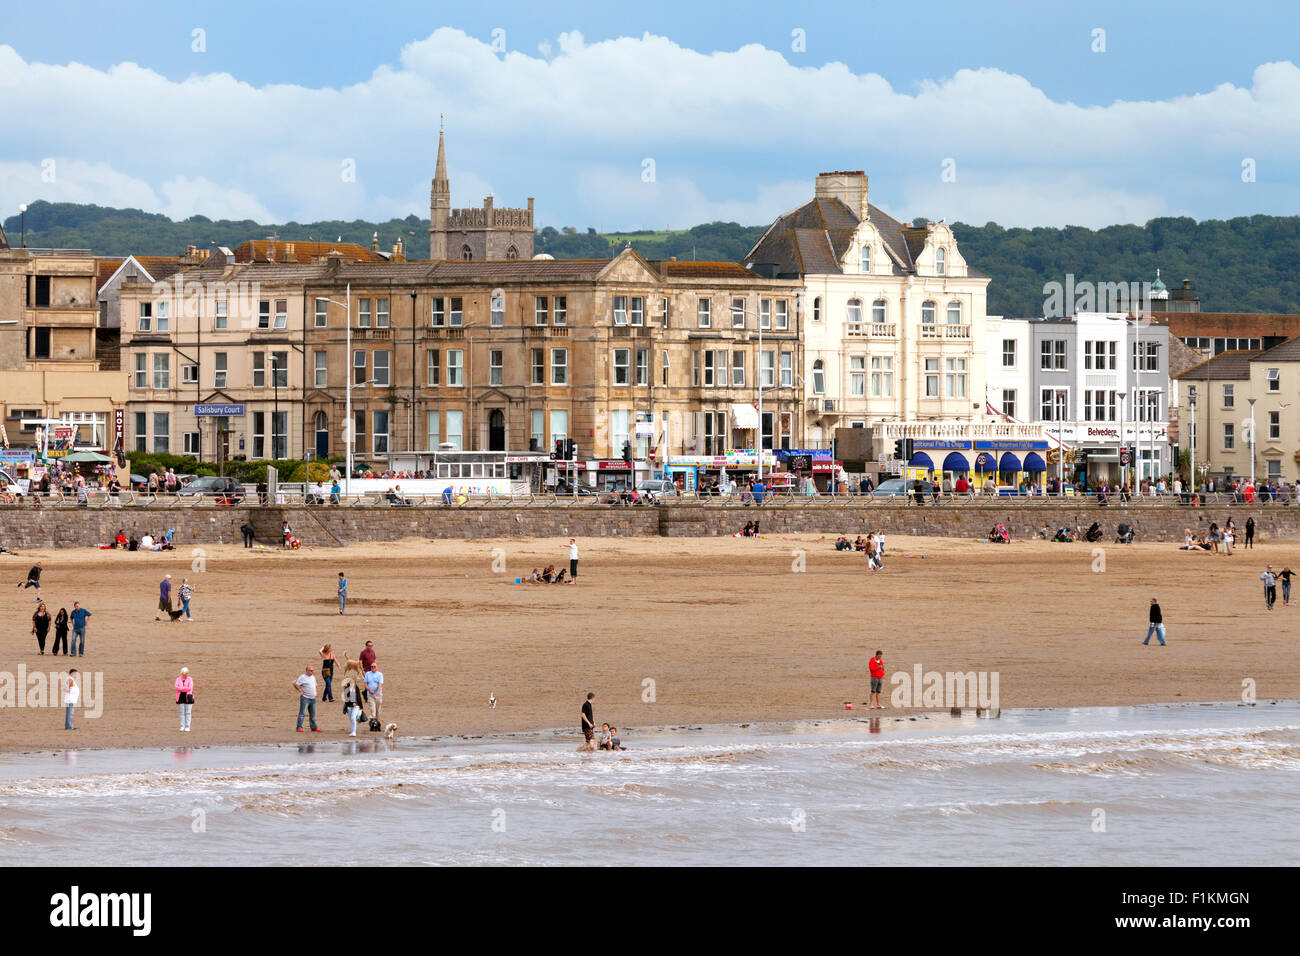 Weston Super Mare beach and seafront, Weston-Super-Mare, Somerset, England UK - Stock Image